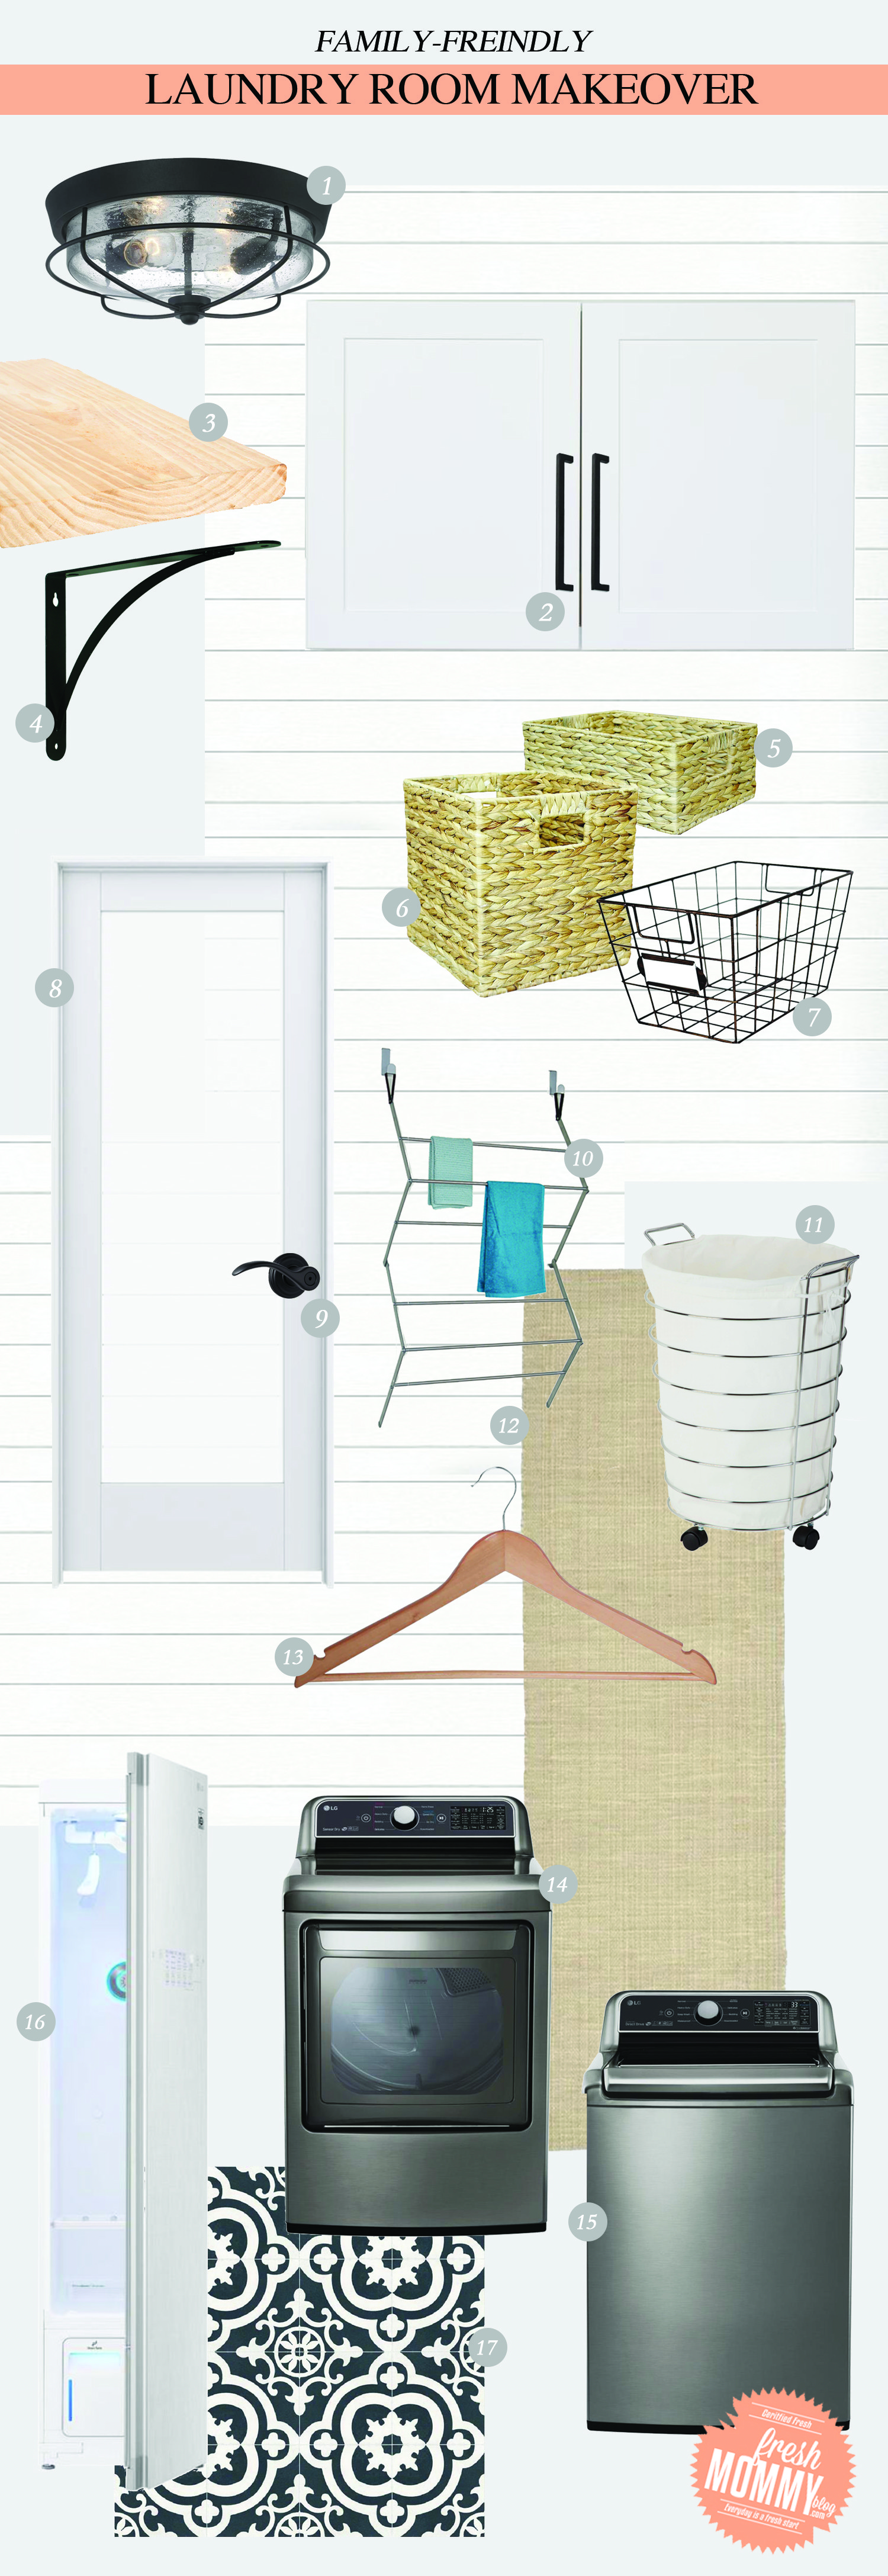 Laundry Room Makeover Ideas! Design plans and ideas for creating a family friendly laundry room by popular Florida lifestyle and home DIY blogger Tabitha Blue of Fresh Mommy Blog | DIY for Covering Breaker Boxes: A Faux Cabinet Tutorial by popular Florida DIY blog, Fresh Mommy: collage image of a light fixture, shelving, frosted glass door, woven baskets, washer and dryer, and laundry basket.